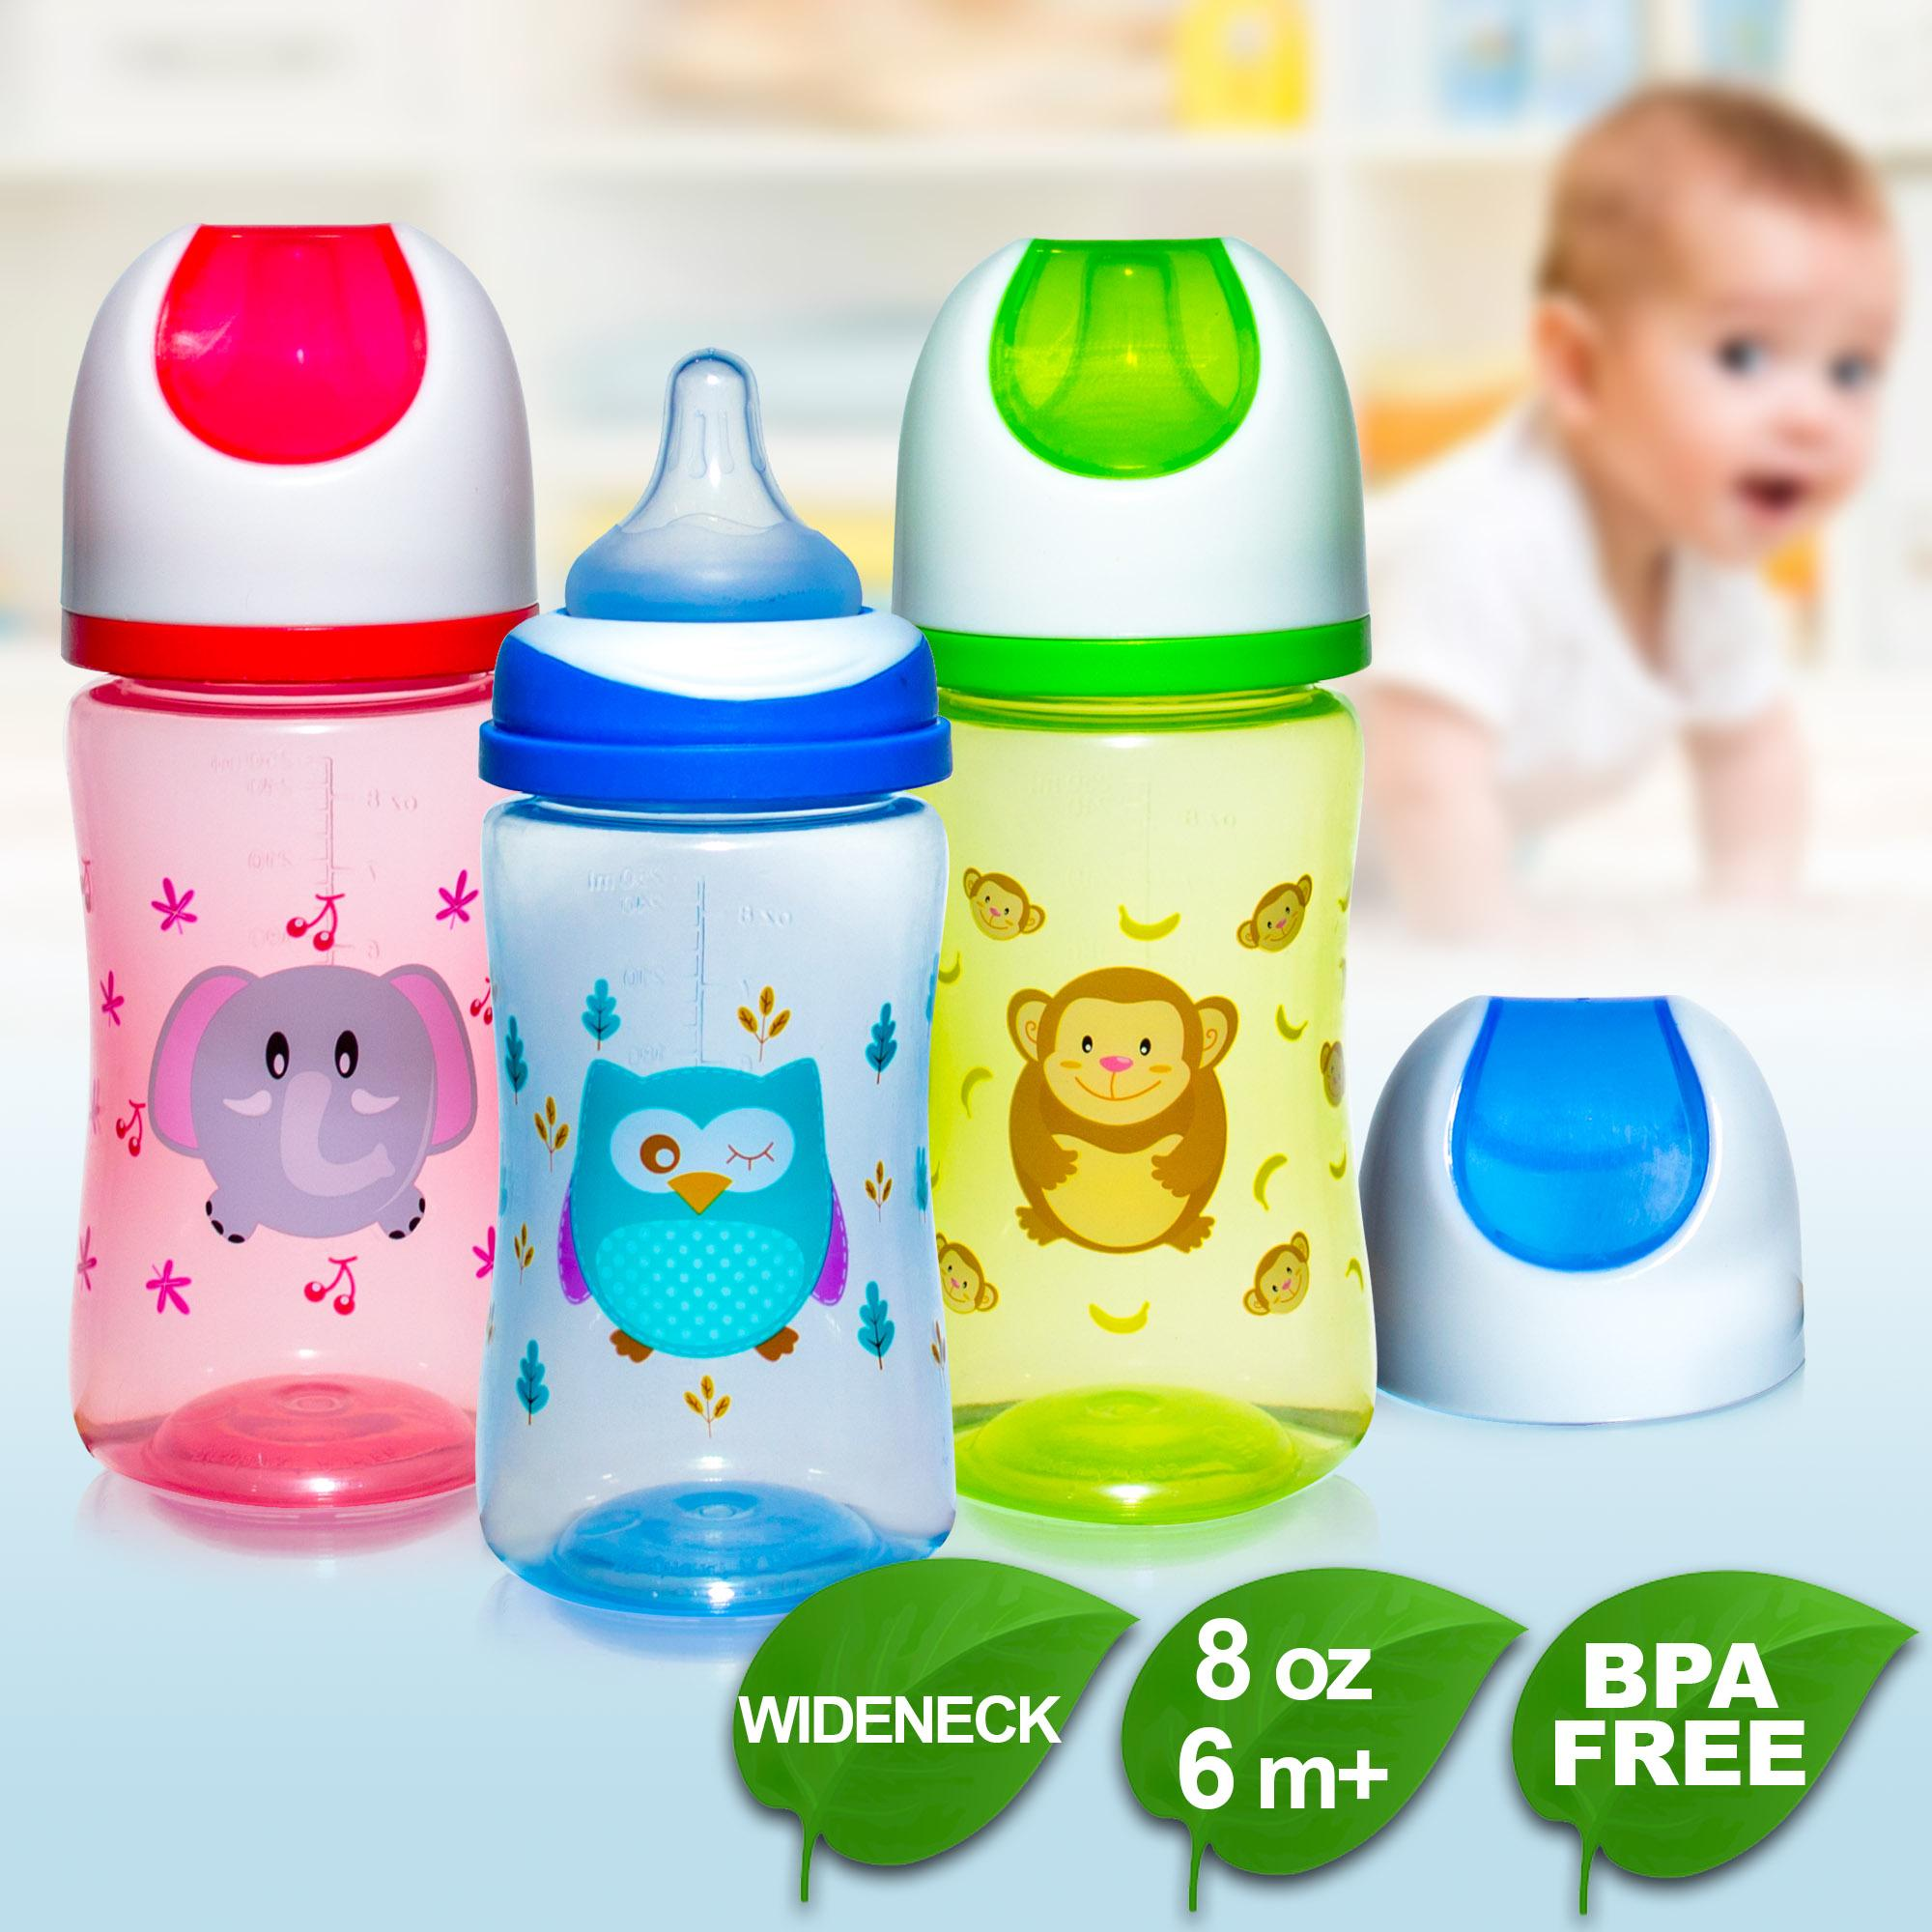 Bpa Free Coral Babies 8oz Tinted Wide Neck Character Feeding Bottle Pack Of 3 By Coral Babies.